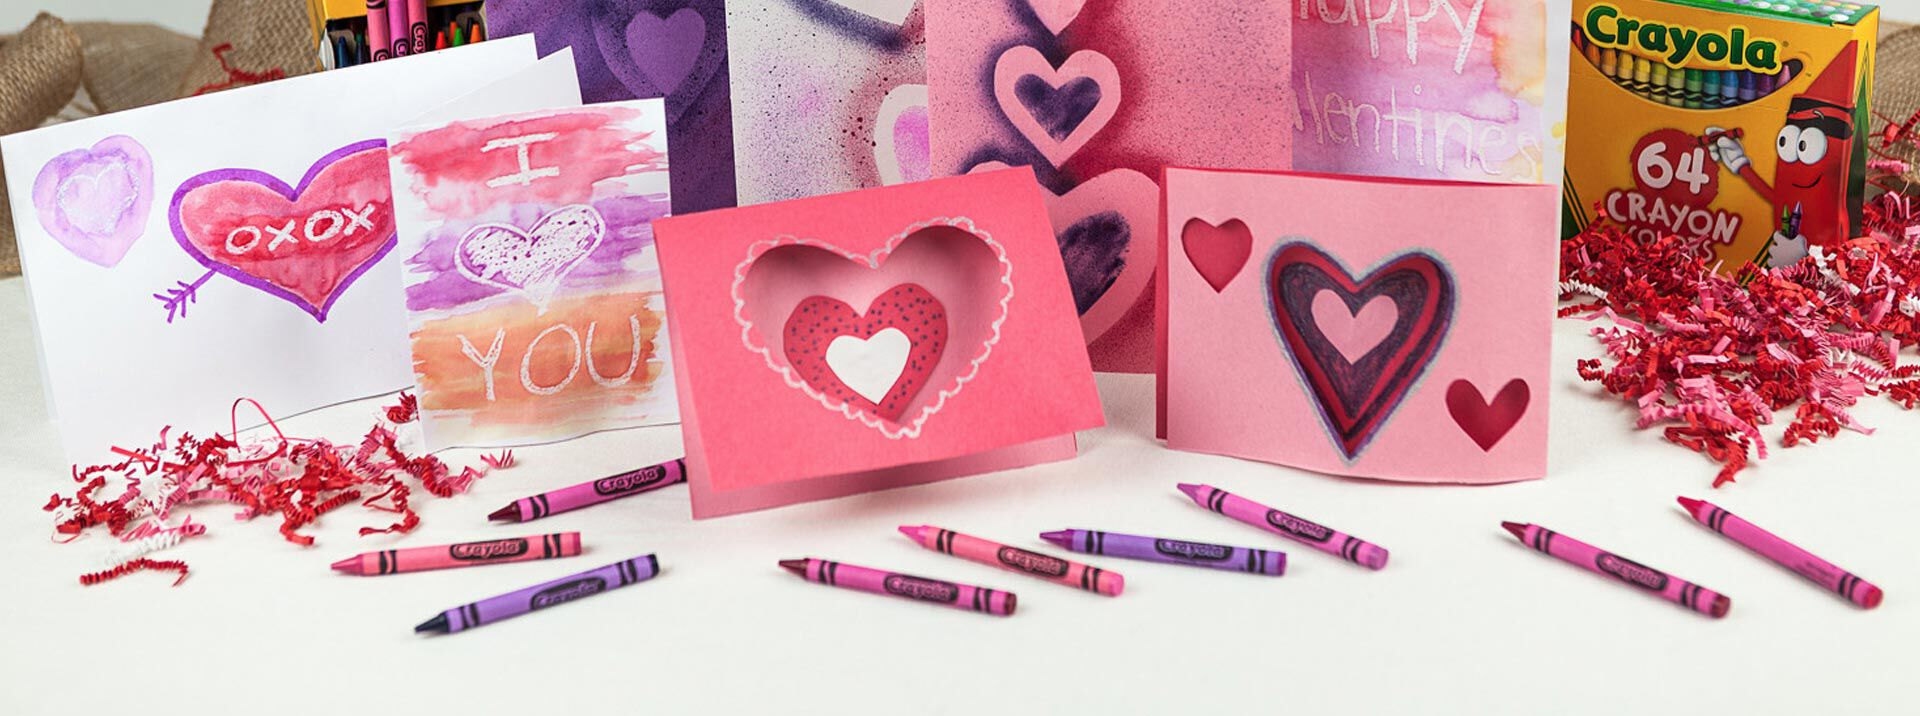 Valentine's Day Card & Craft Supplies